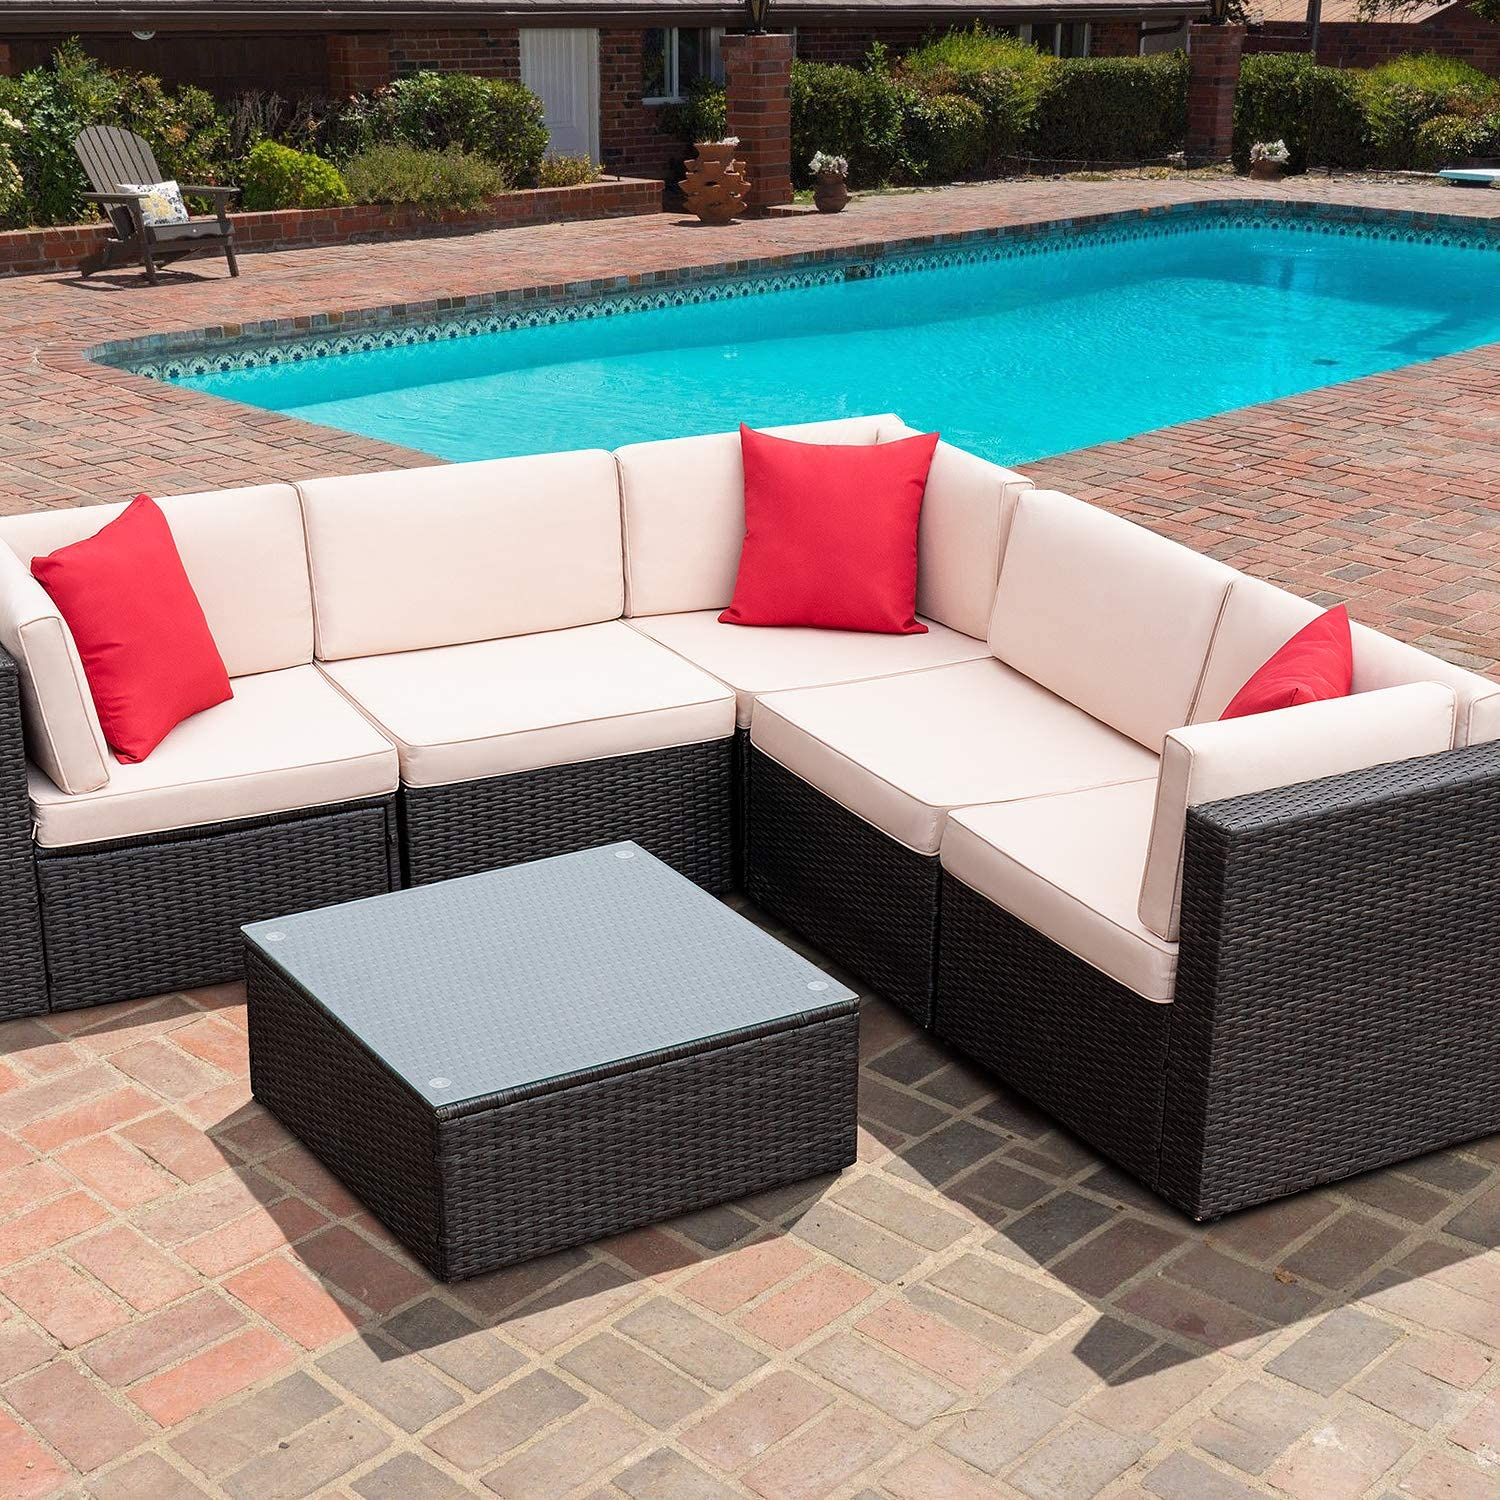 Amazon Com Furniwell 6 Pieces Patio Furniture Sectional Set Outdoor Wicker Rattan Sofa Set Backyard Couch Clearance Conversation Sets With Pillow Cushions And Glass Table Beige Garden Outdoor